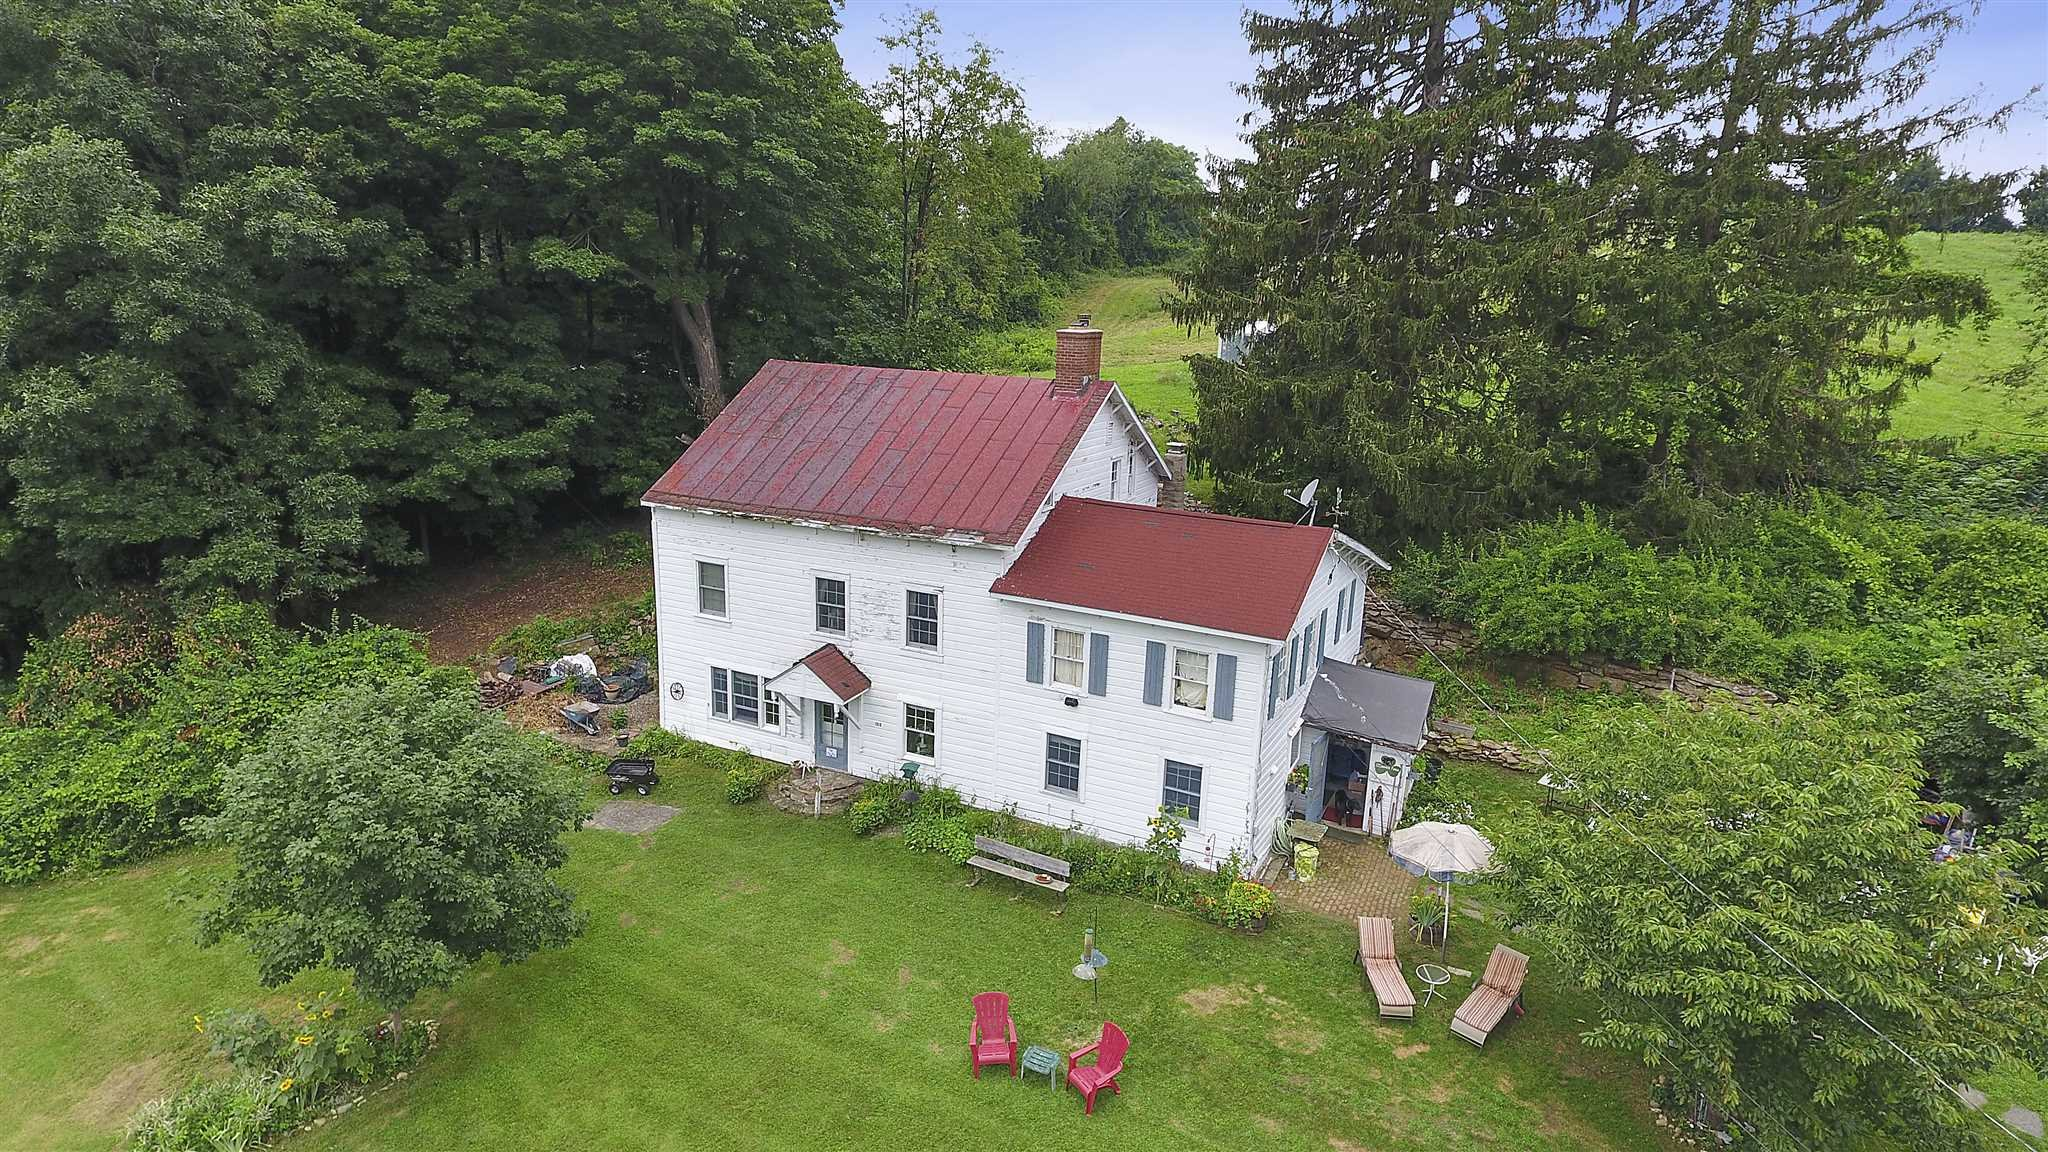 Single Family Home for Sale at 131 FROG HOLLOW Road 131 FROG HOLLOW Road Beekman, New York 12570 United States